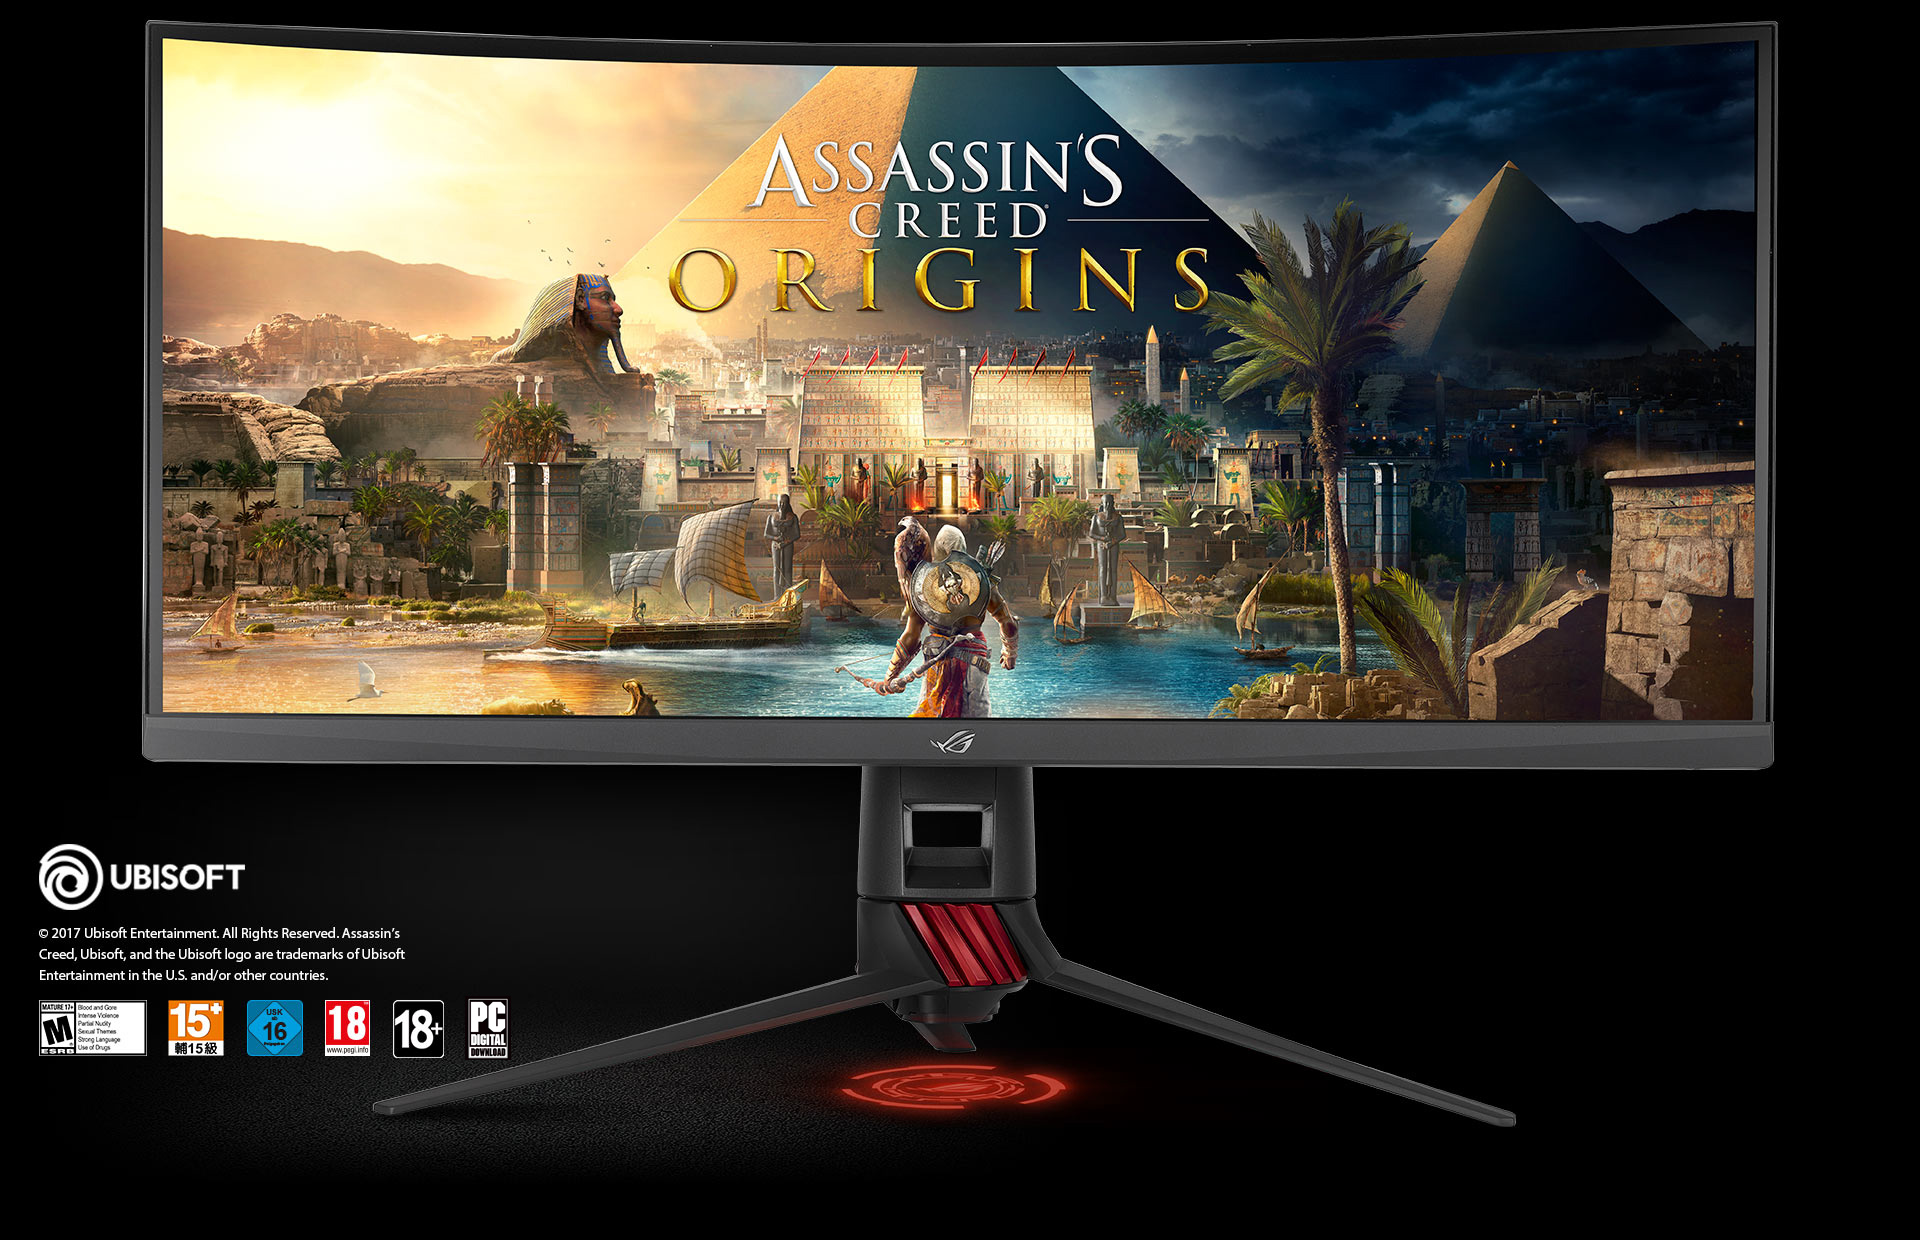 the monitor with a Assassin's creed origins game screenshot